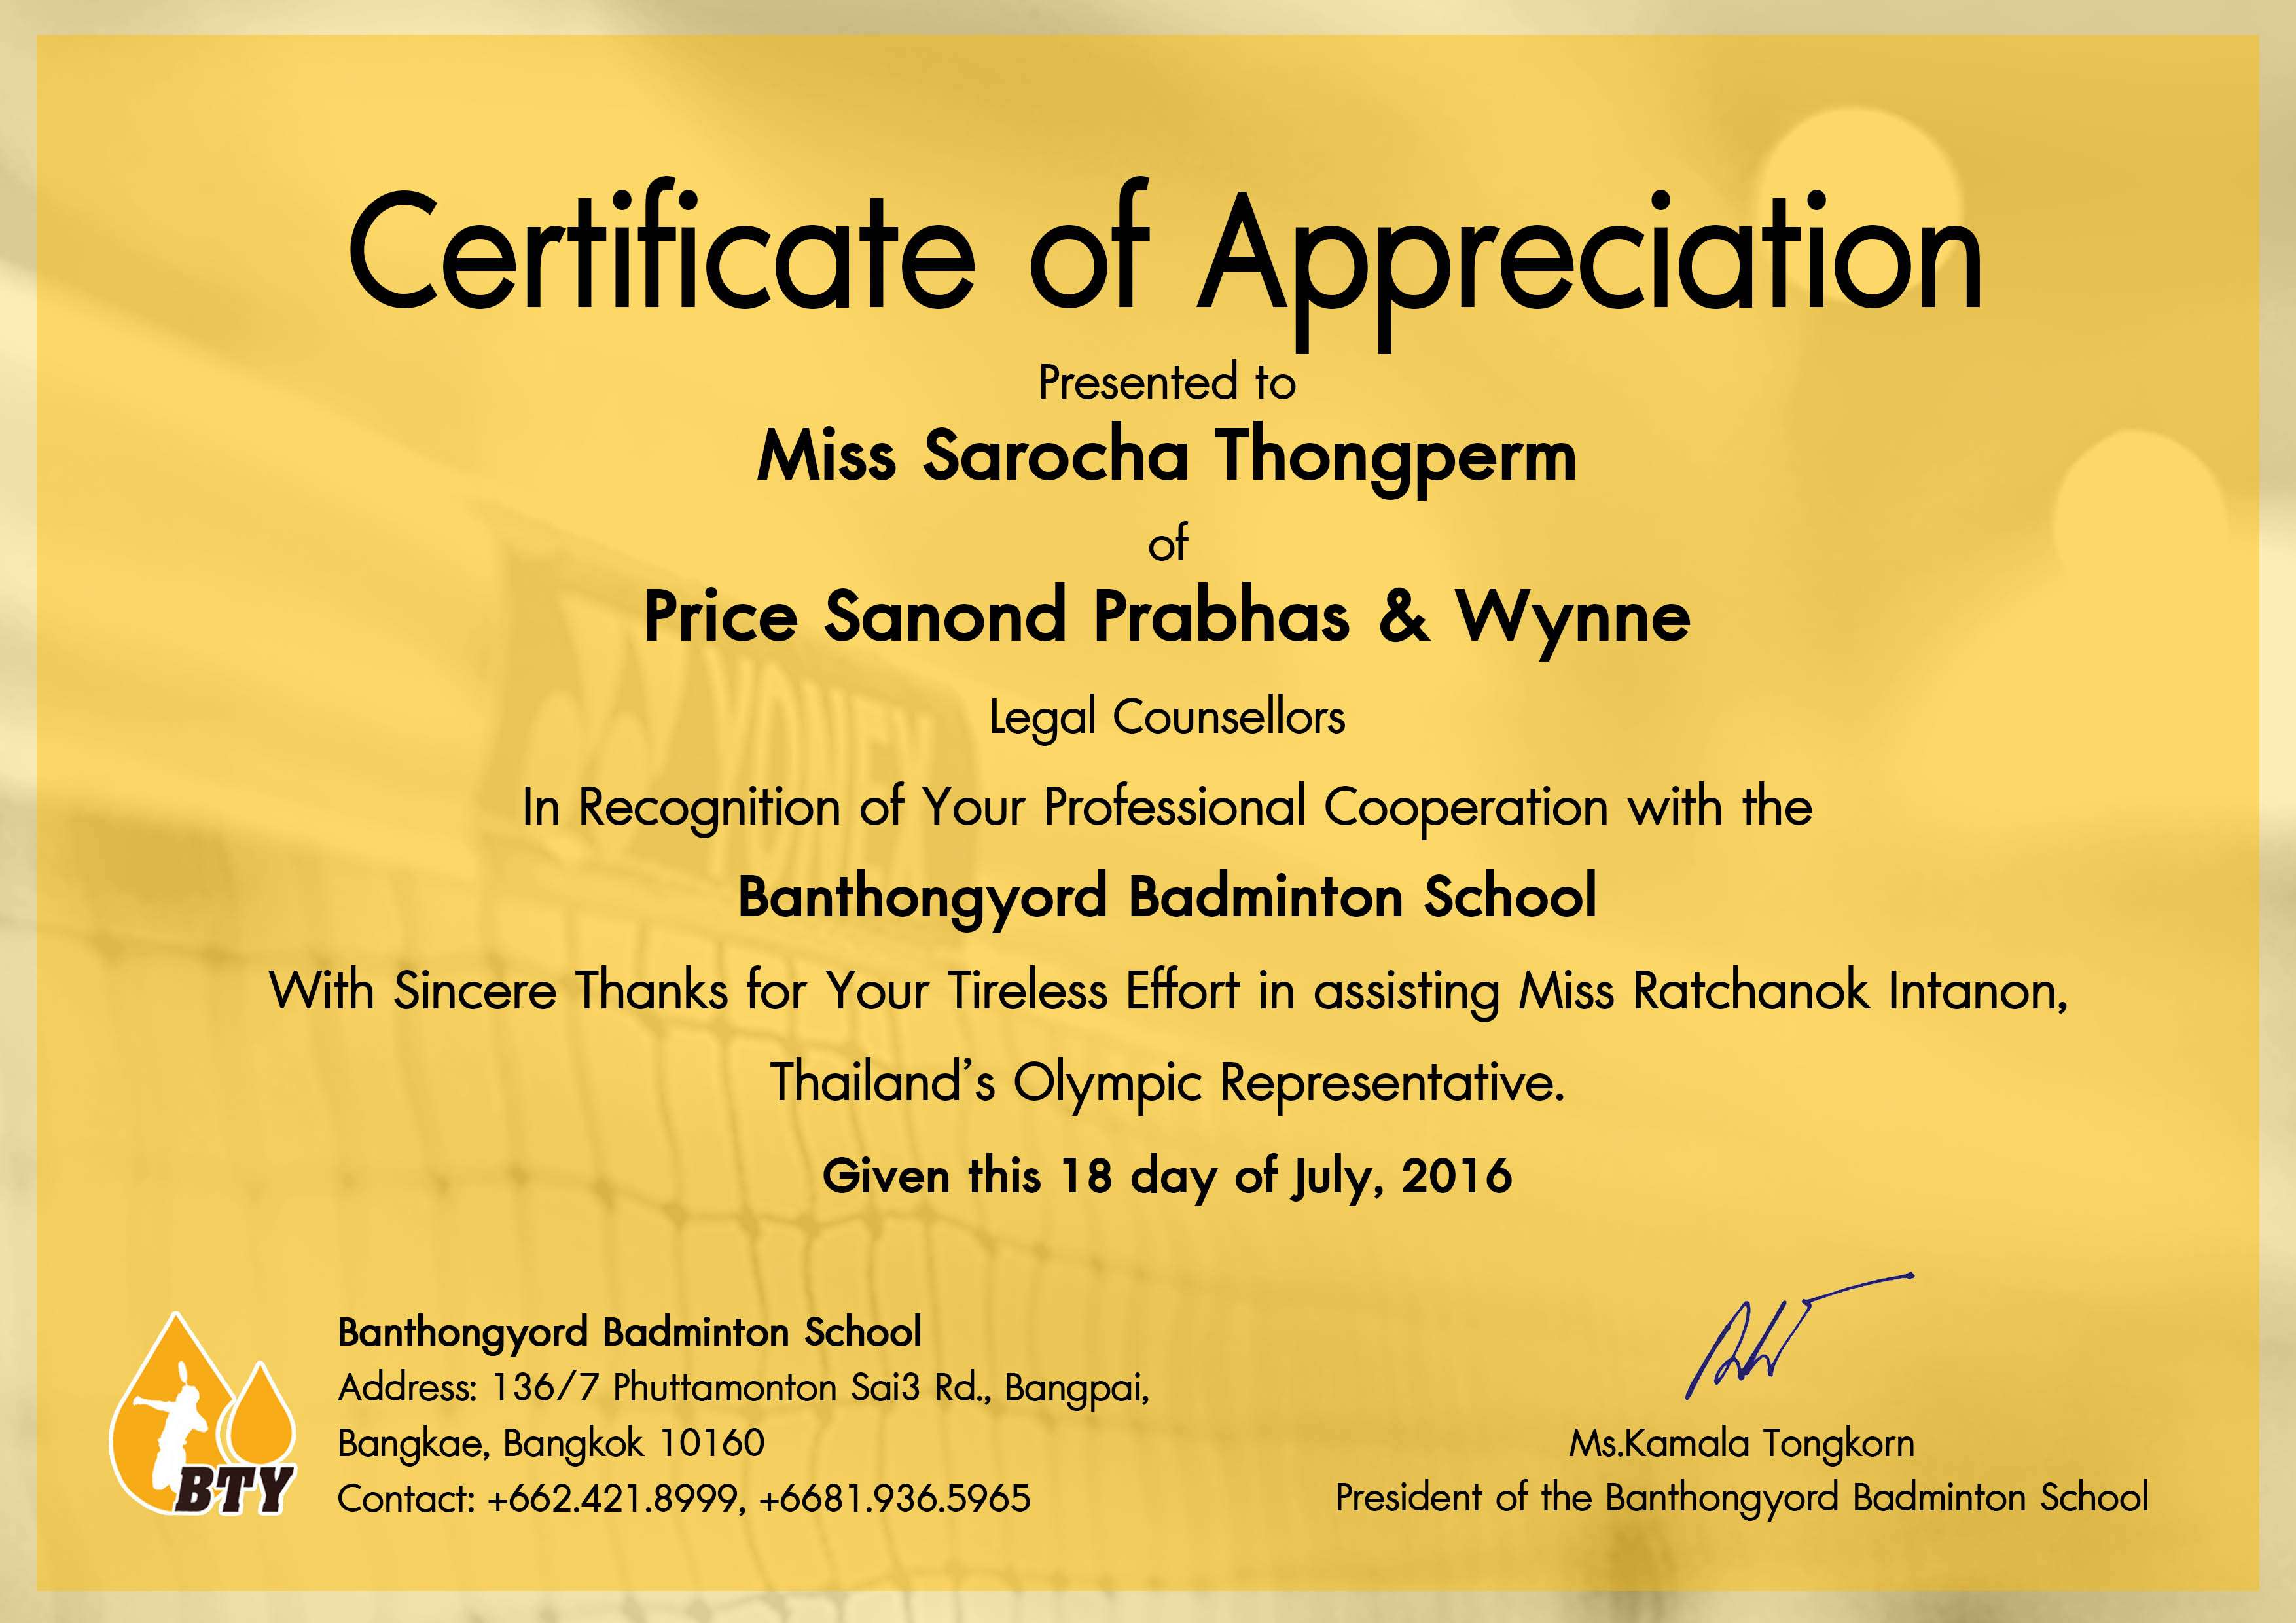 18 certificate of appreciation sample expense report free pricesanond lawyer sarocha thongperm recognized for her support in certificate of appreciation pricesanond lawyer sarocha thongperm xflitez Image collections